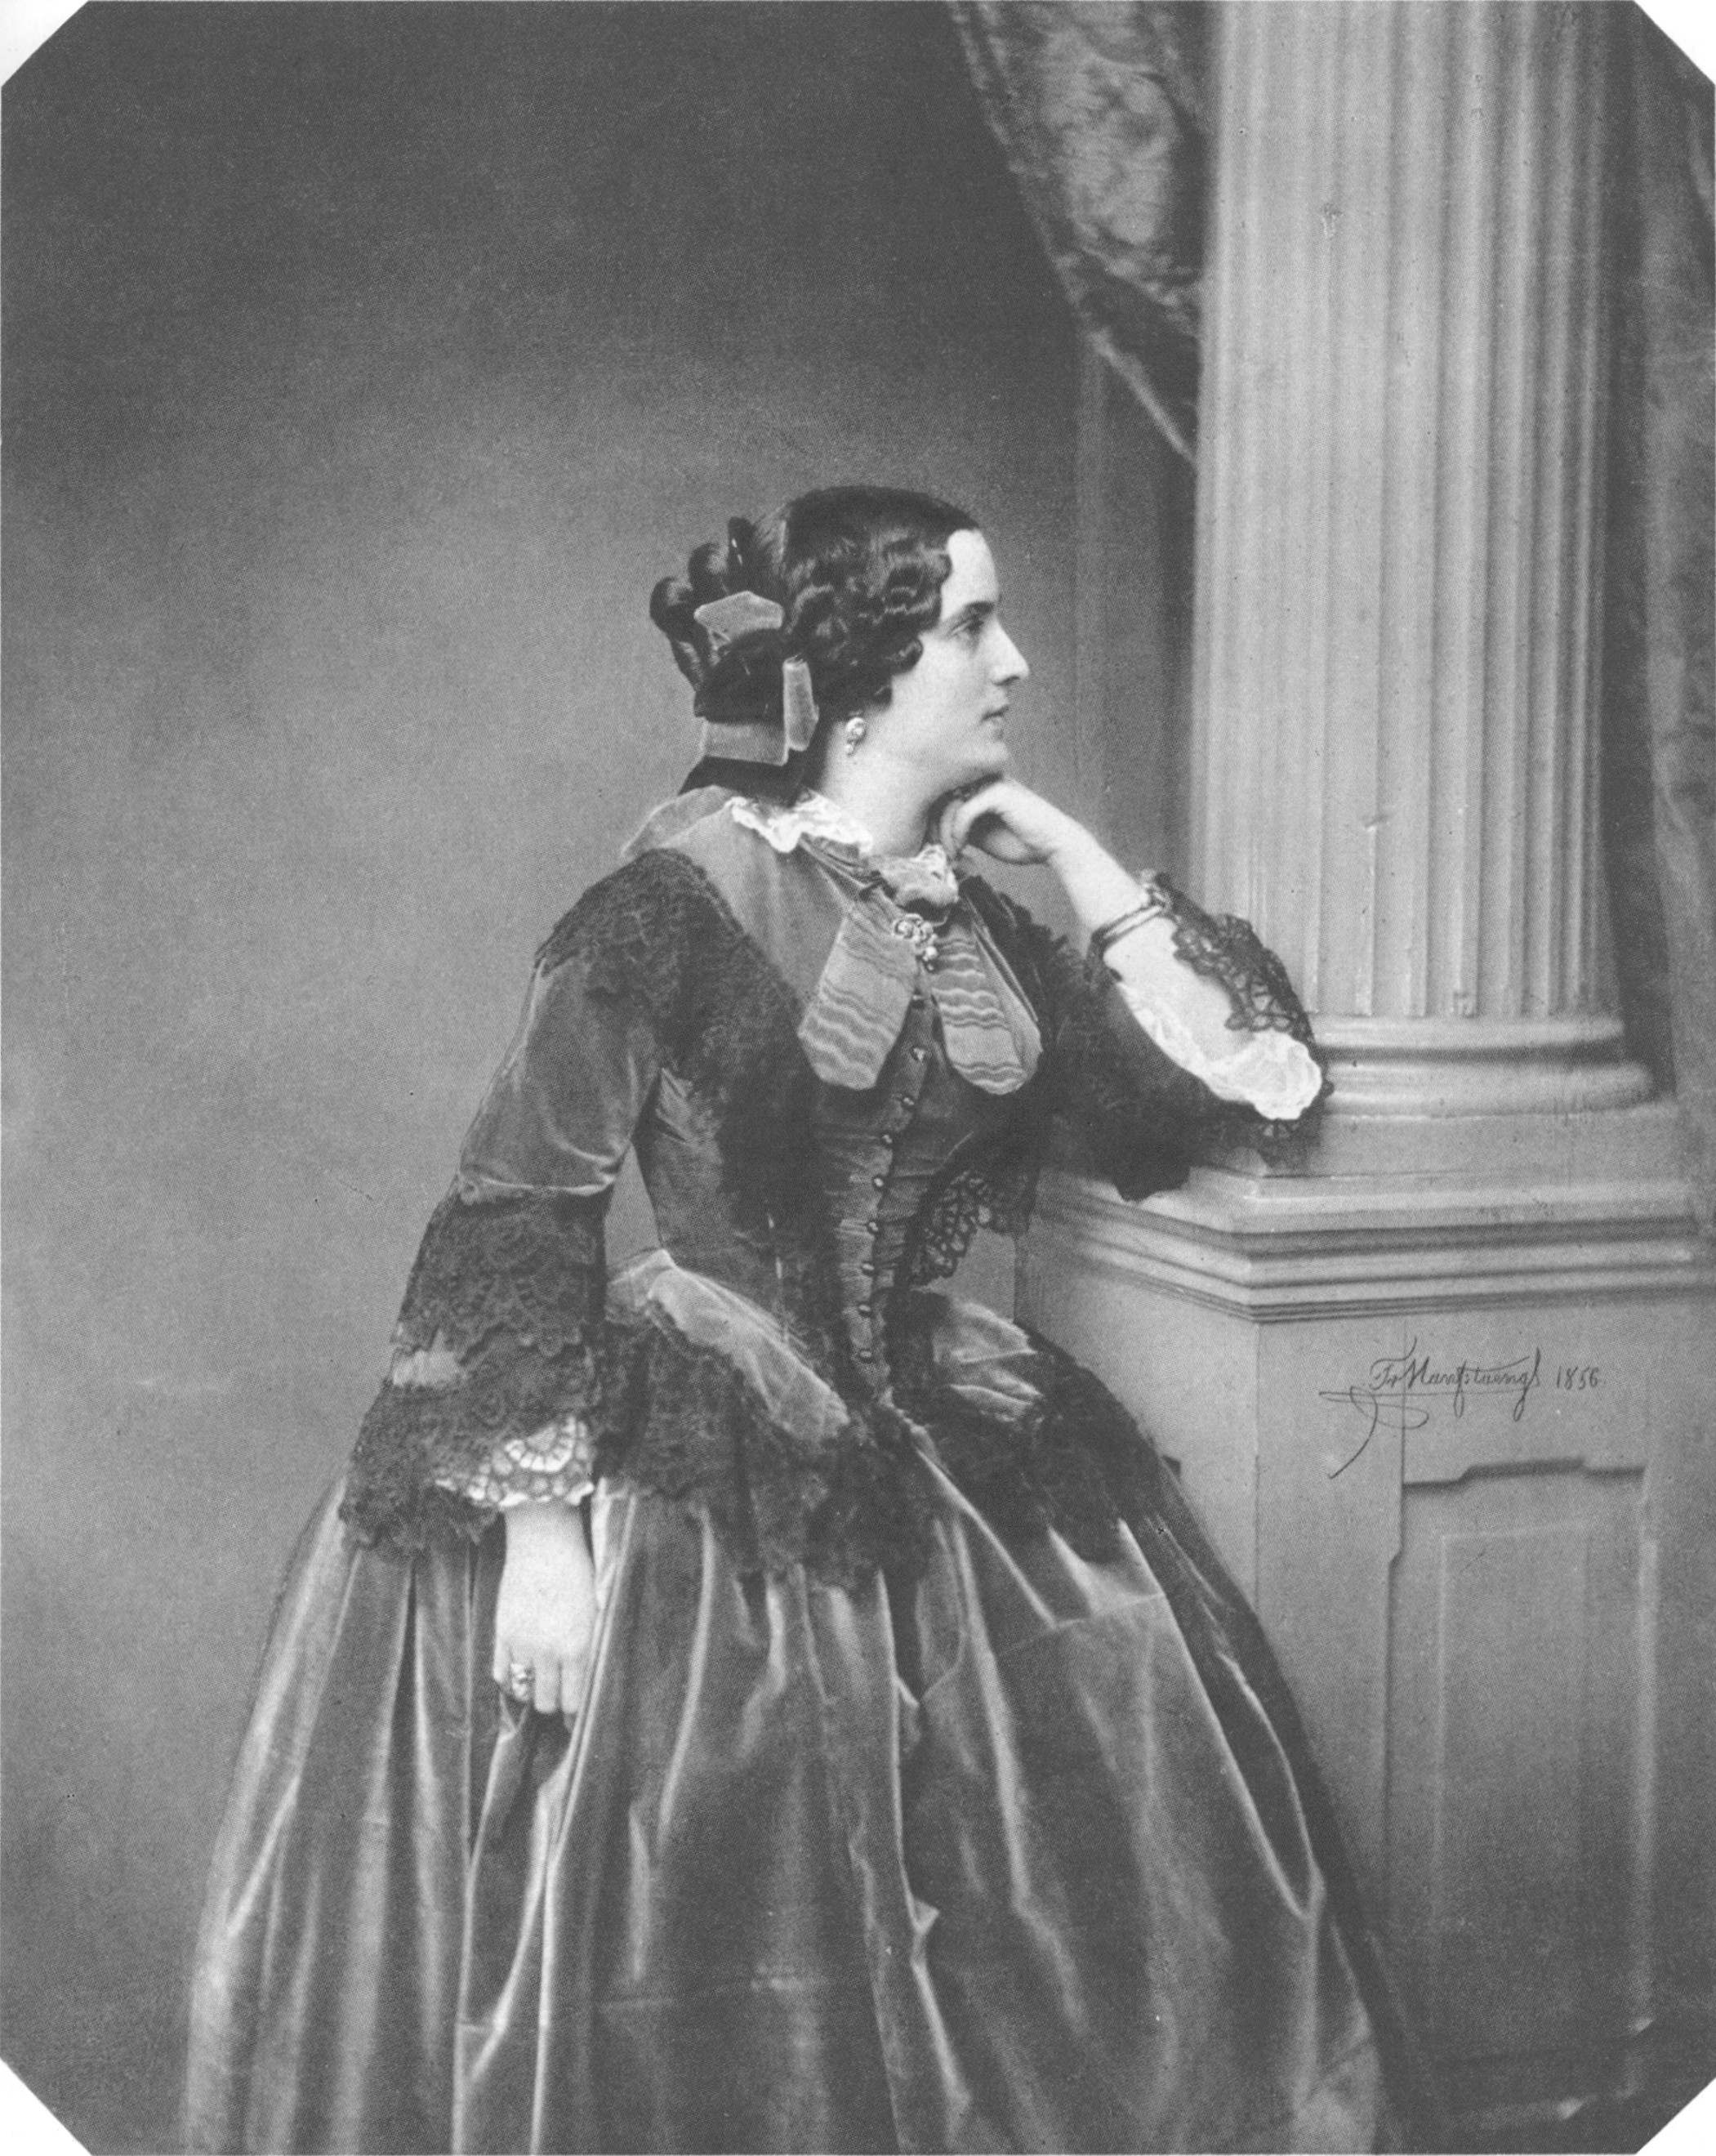 pepita de oliva 1856 costume cocktail